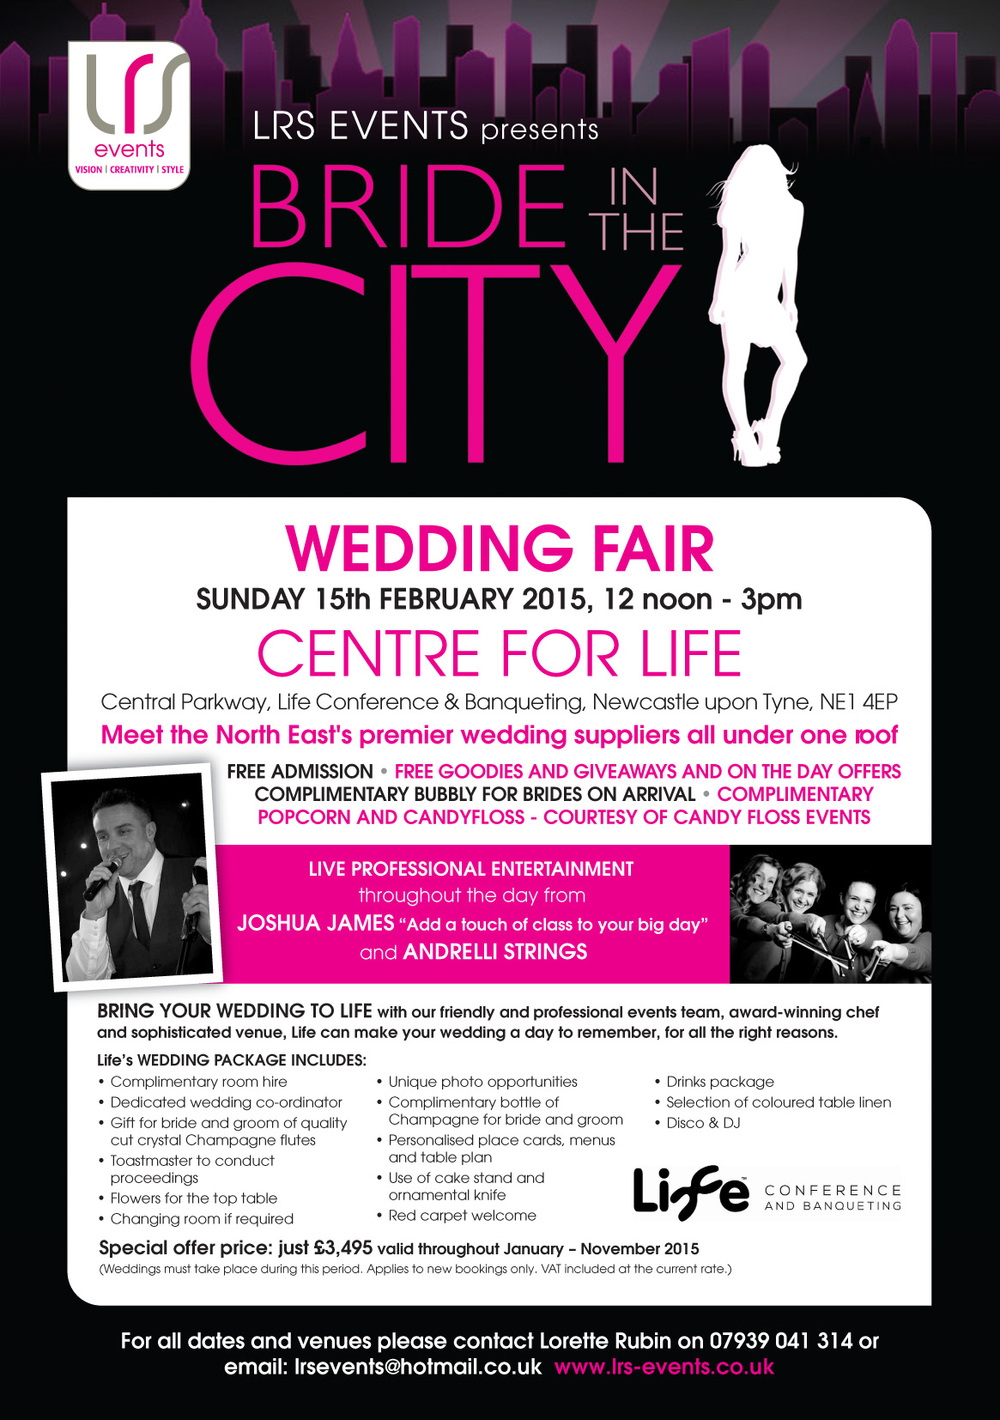 Barry Forshaw Photography will be at the Centre for Life on Sunday 15th February